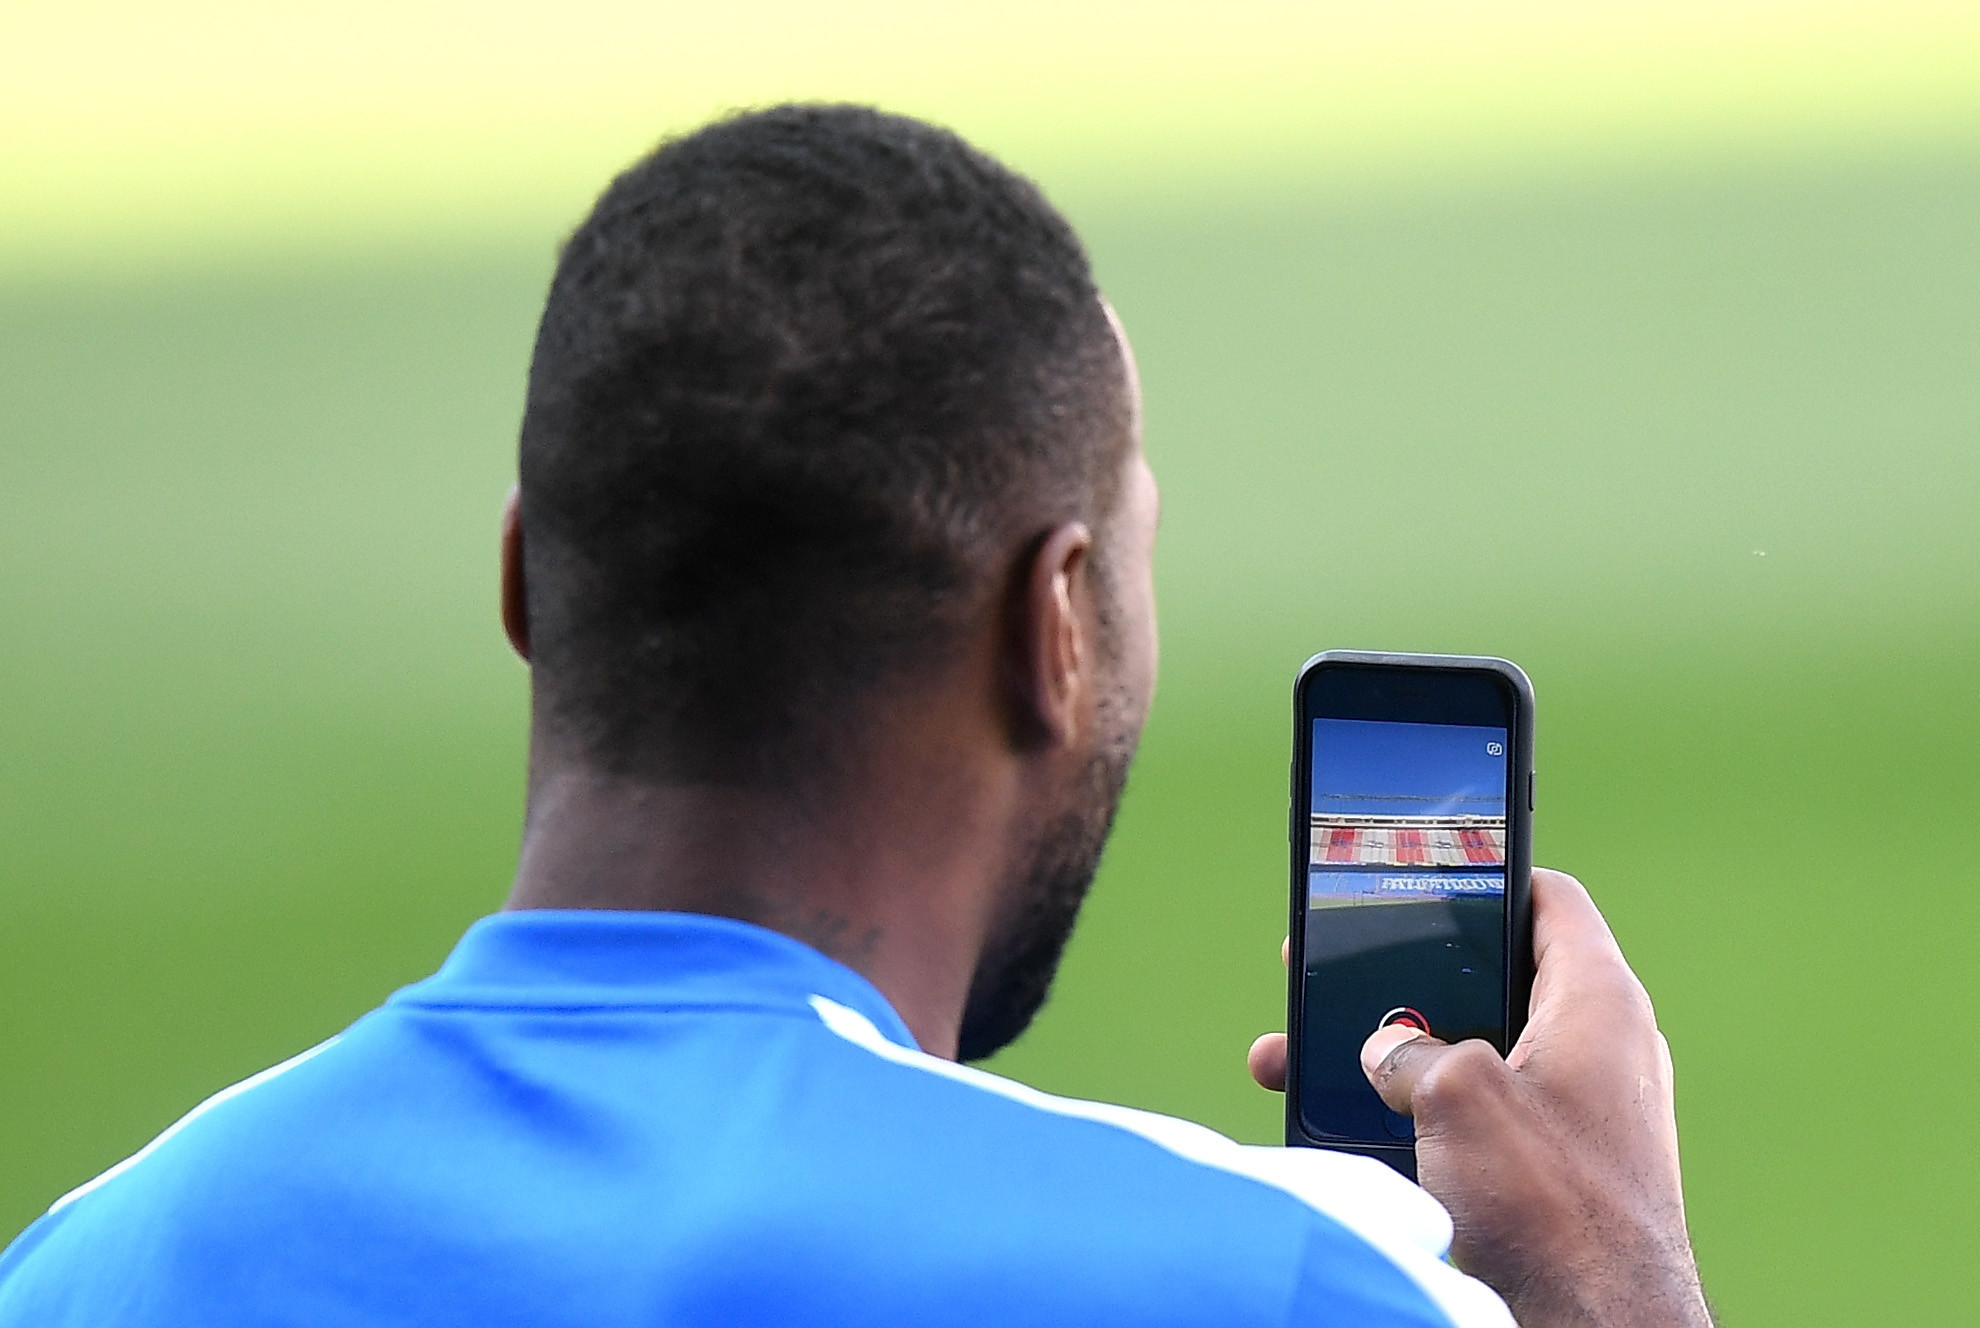 Leicester City captain Wes Morgan uses Snapchat during a training session ©Getty Images